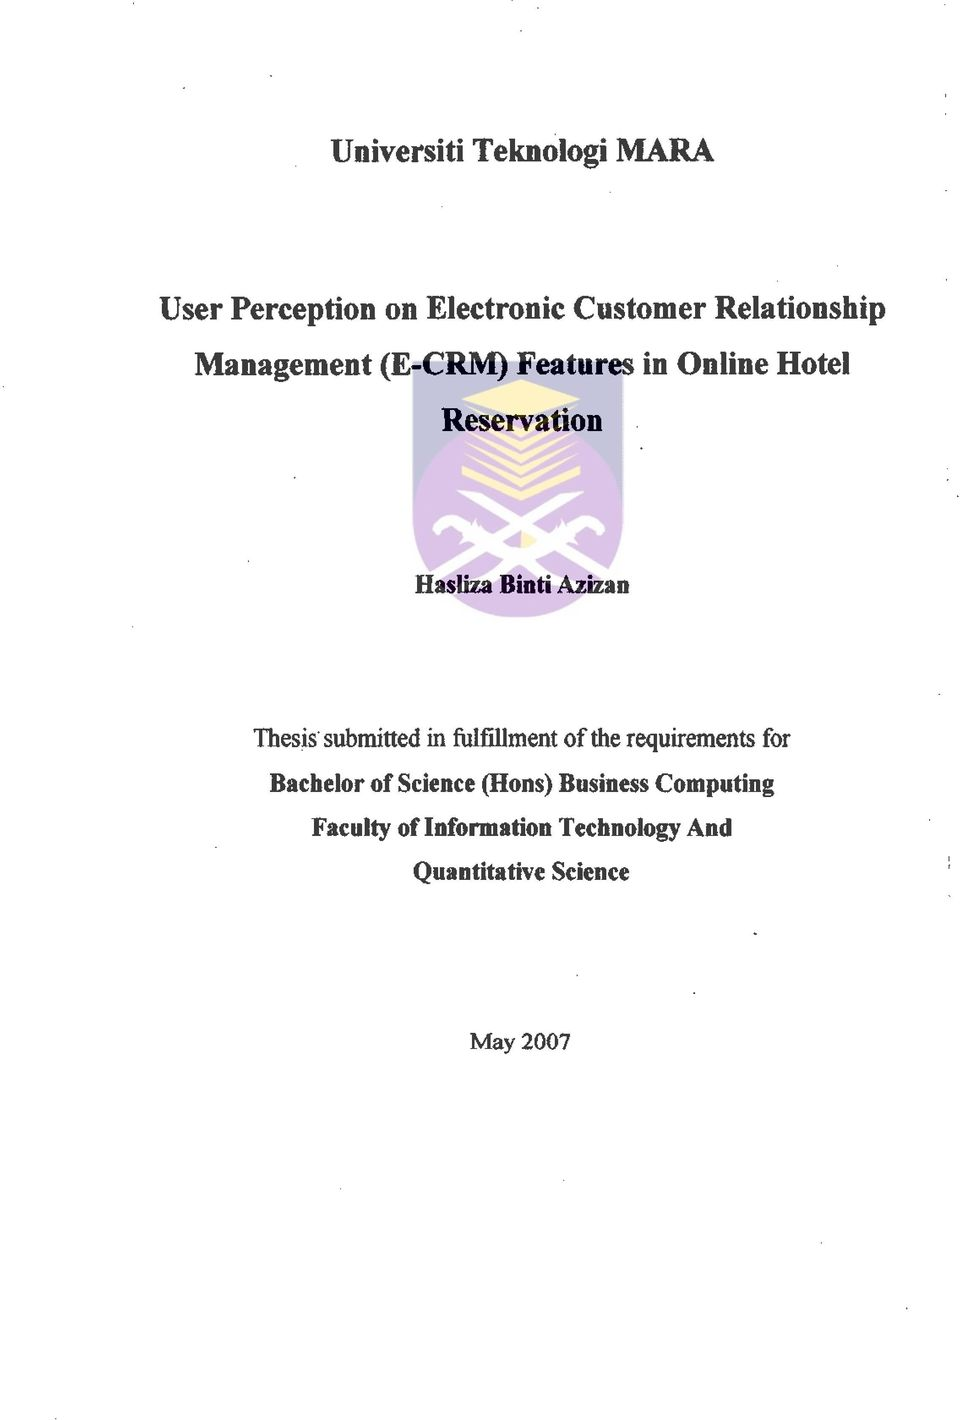 Thesis submitted in fulfillment of the requirements for Bachelor of Science